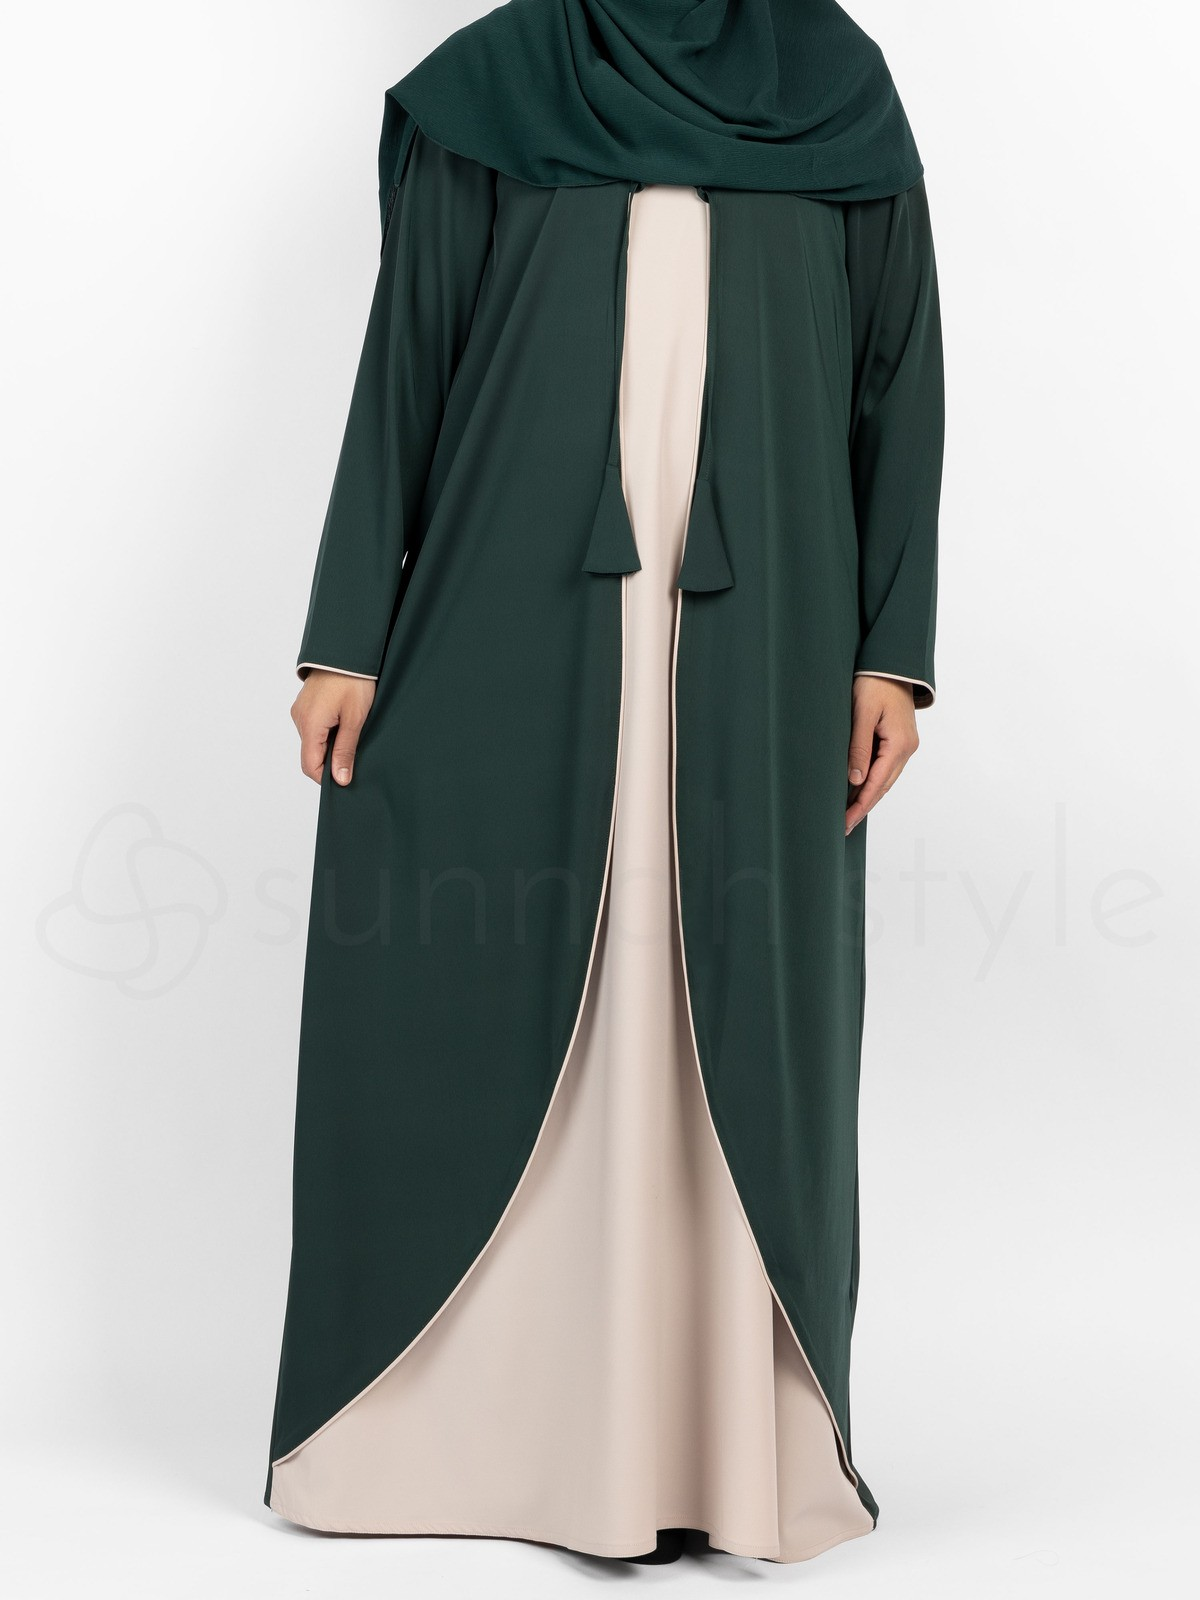 Sunnah Style - Bloom Two Tone Abaya (Pine/Sahara)